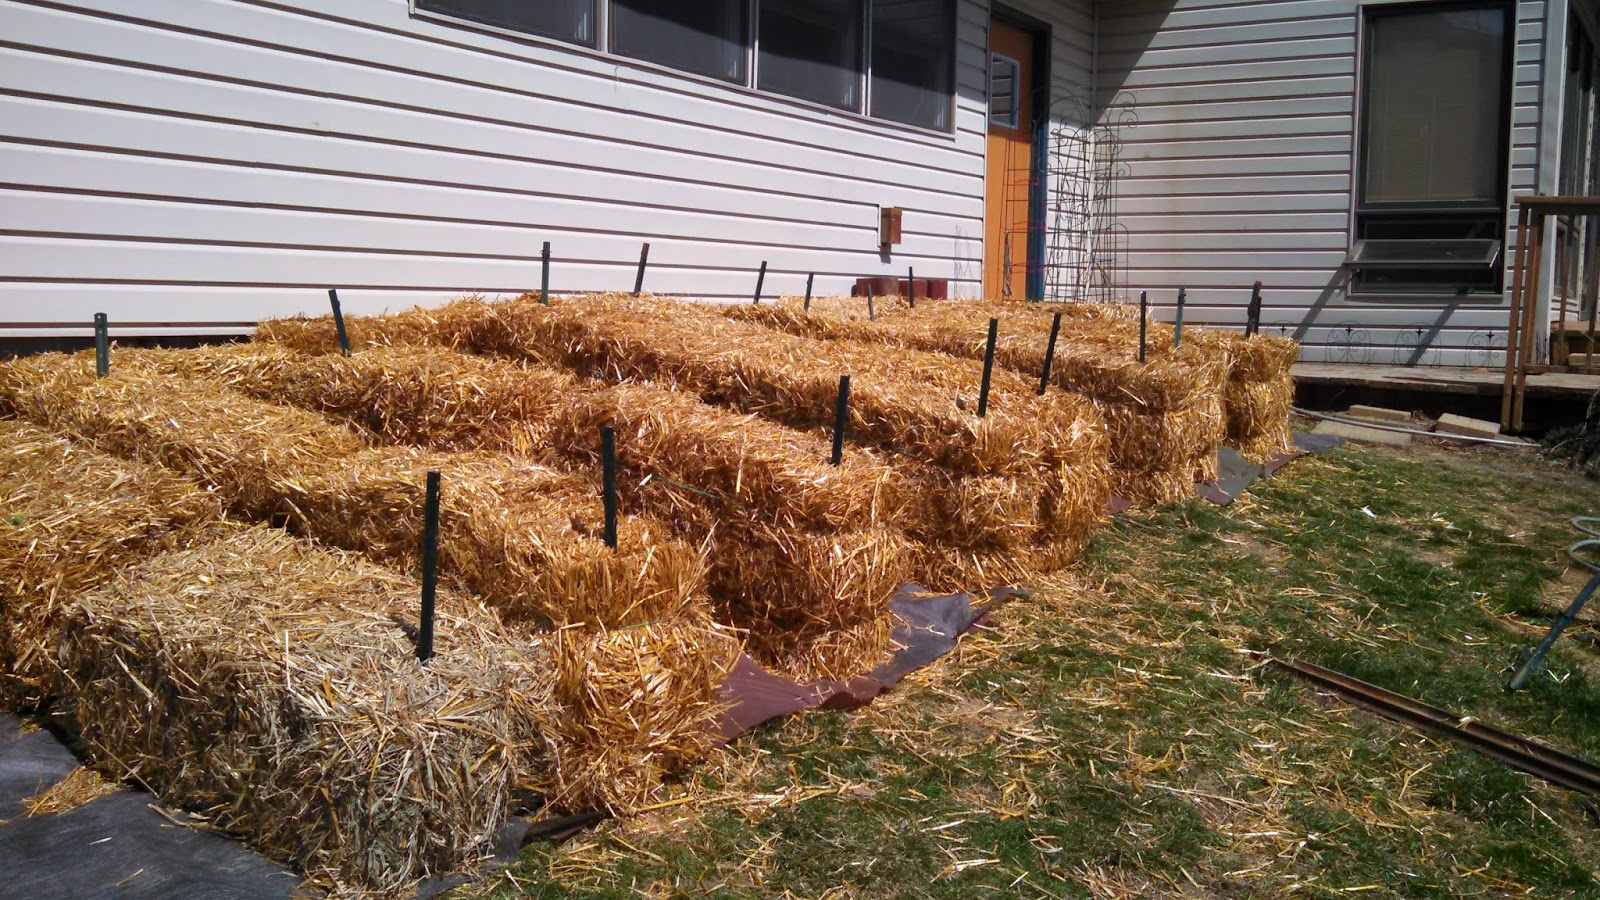 Straw Bales in Place for Straw Bale Garden